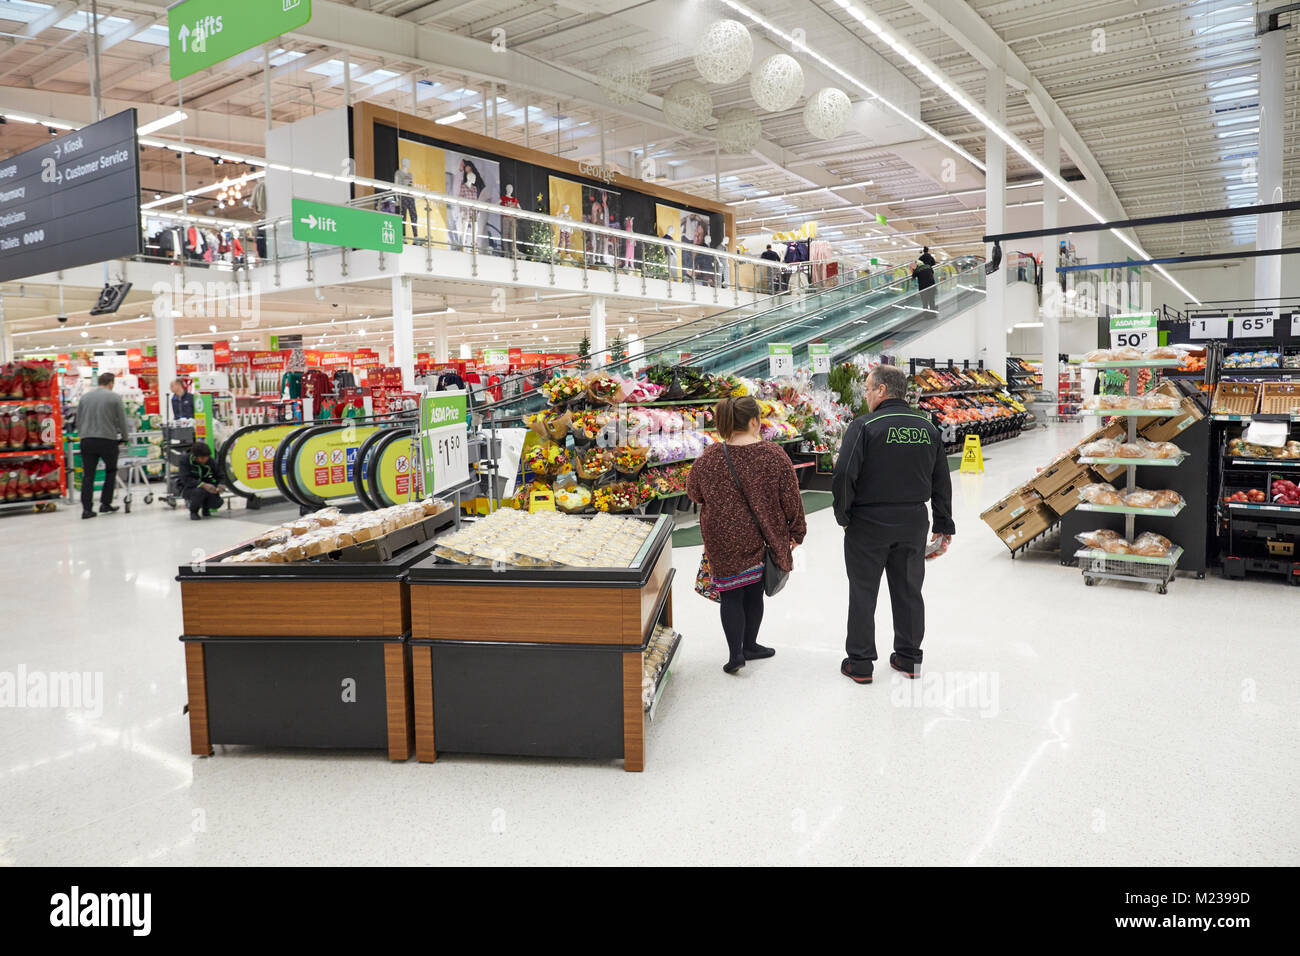 Asda trafford, the large two levels supermarket in manchester - Stock Image